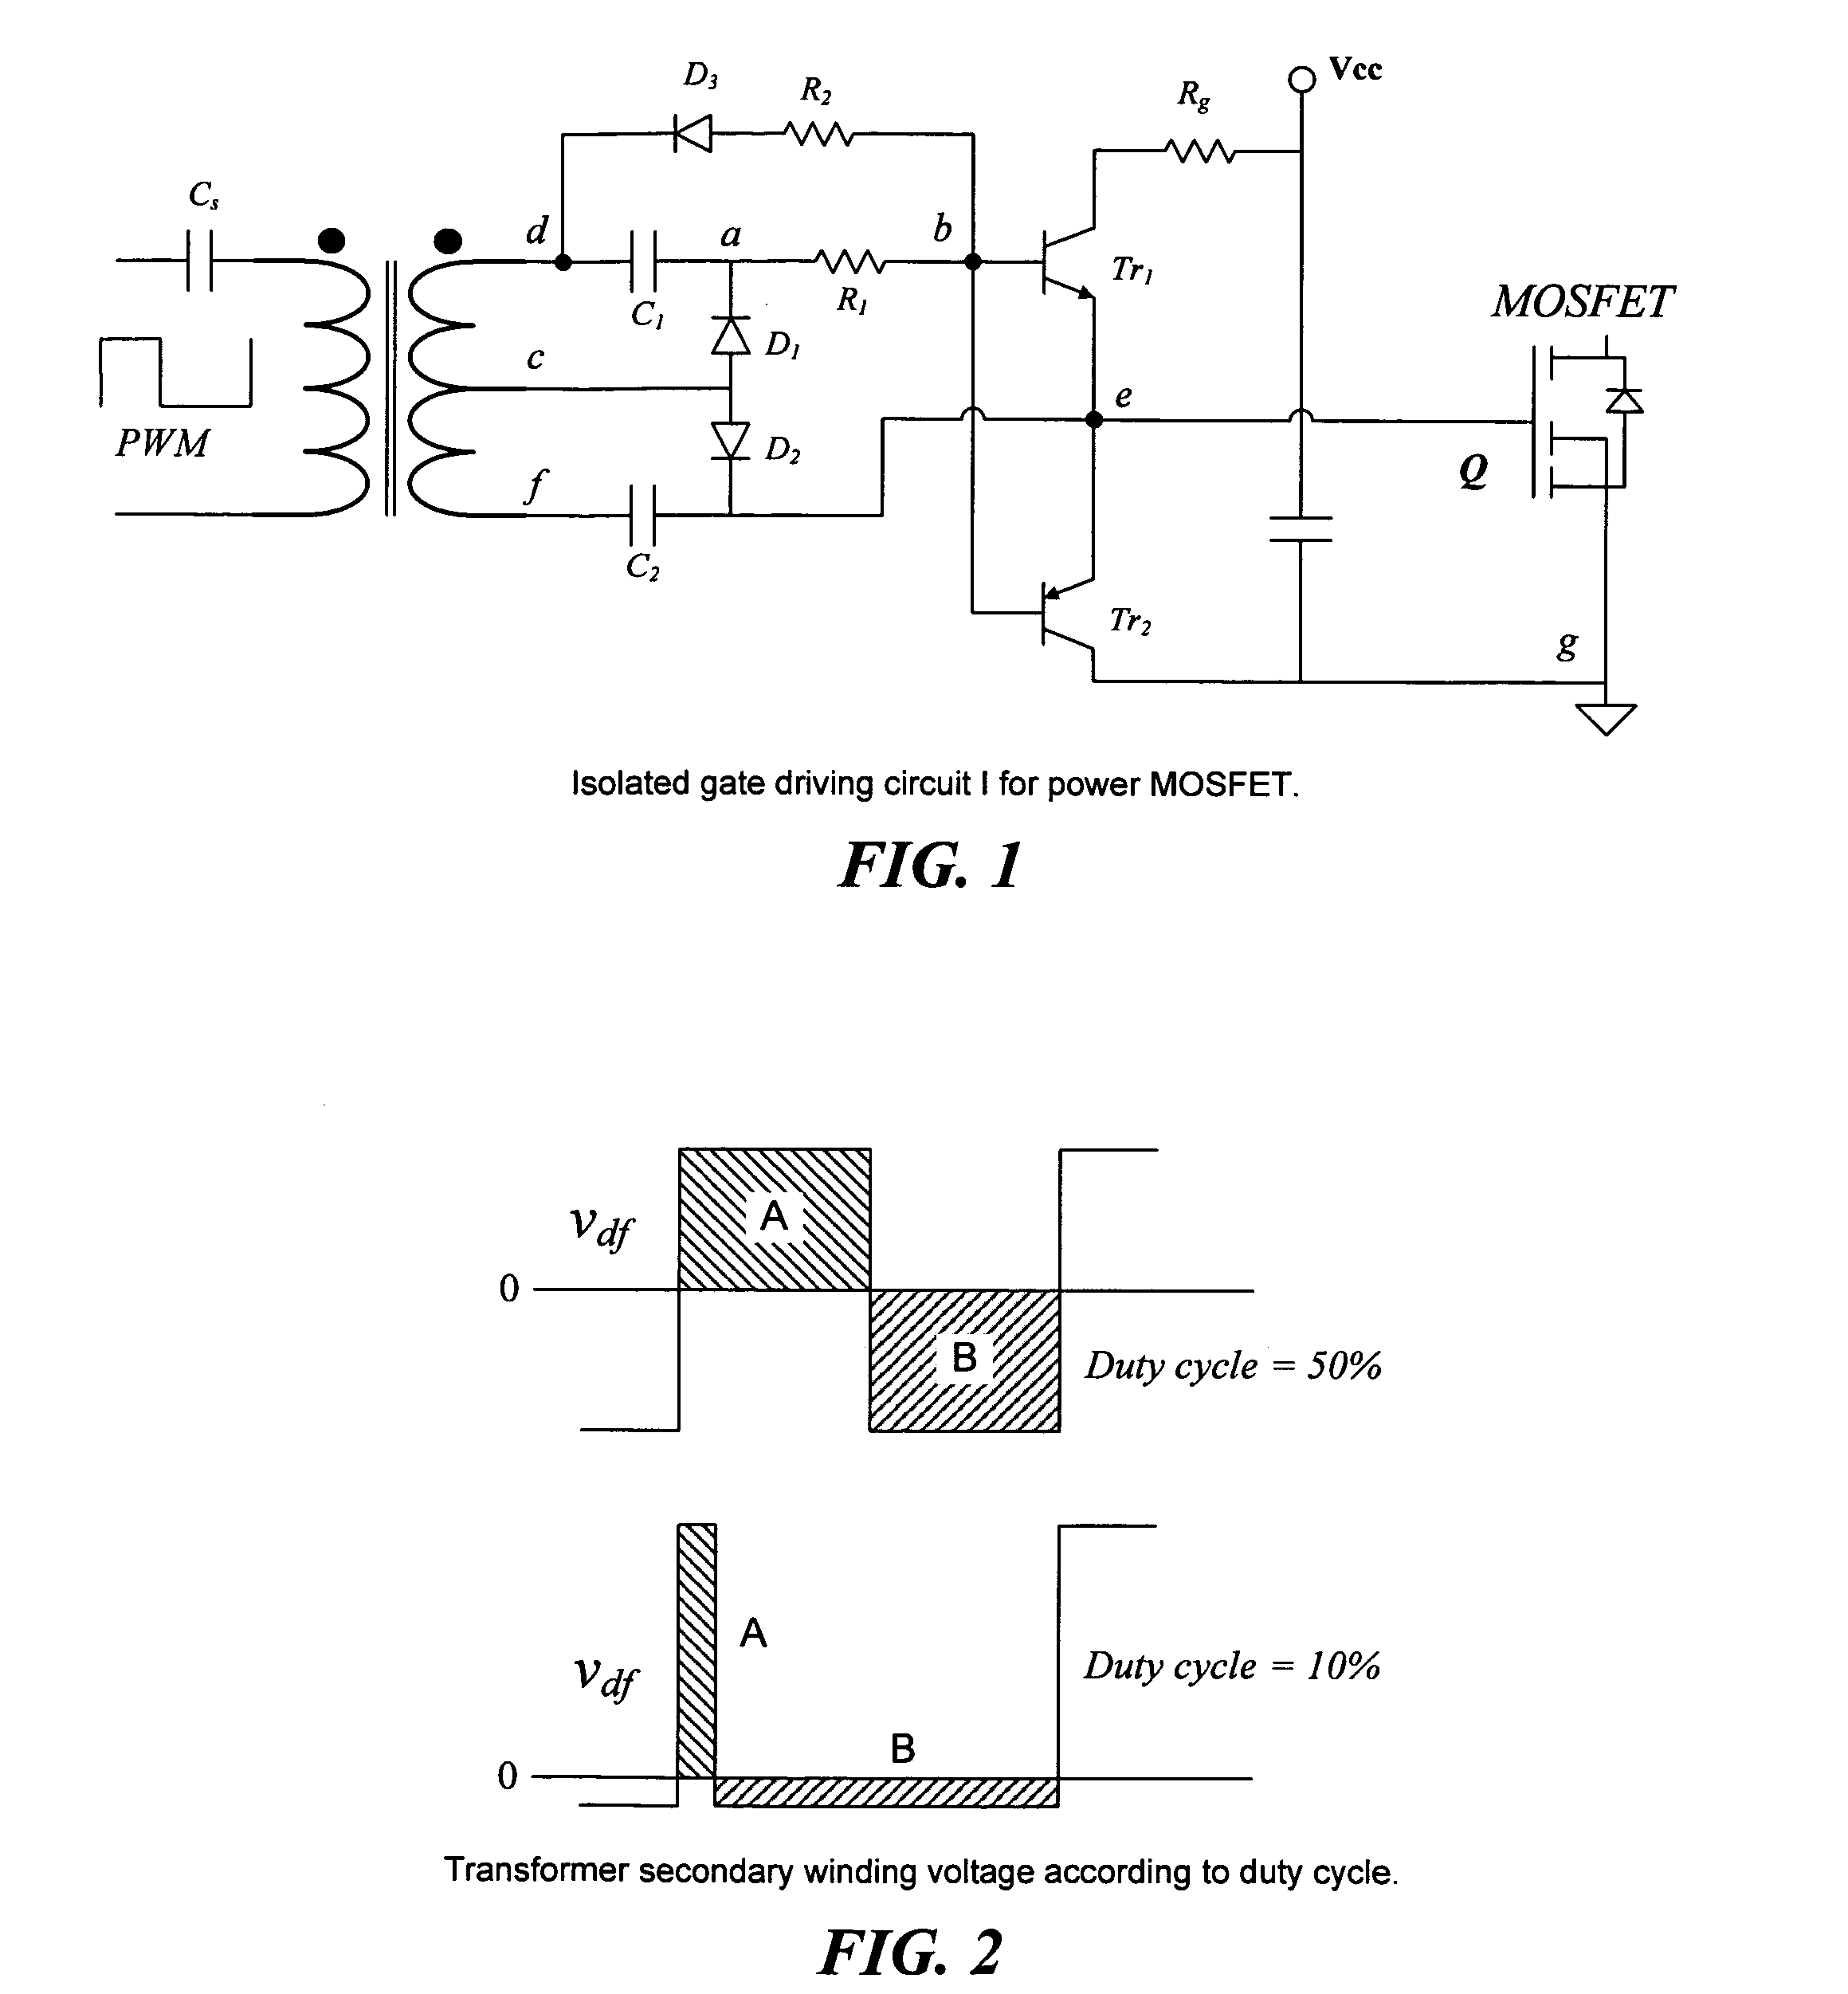 Patent Us7236041 Isolated Gate Driver Circuit For Power Switching Part Of A Shows Half Bridges With Centre Tapped Windings Drawing